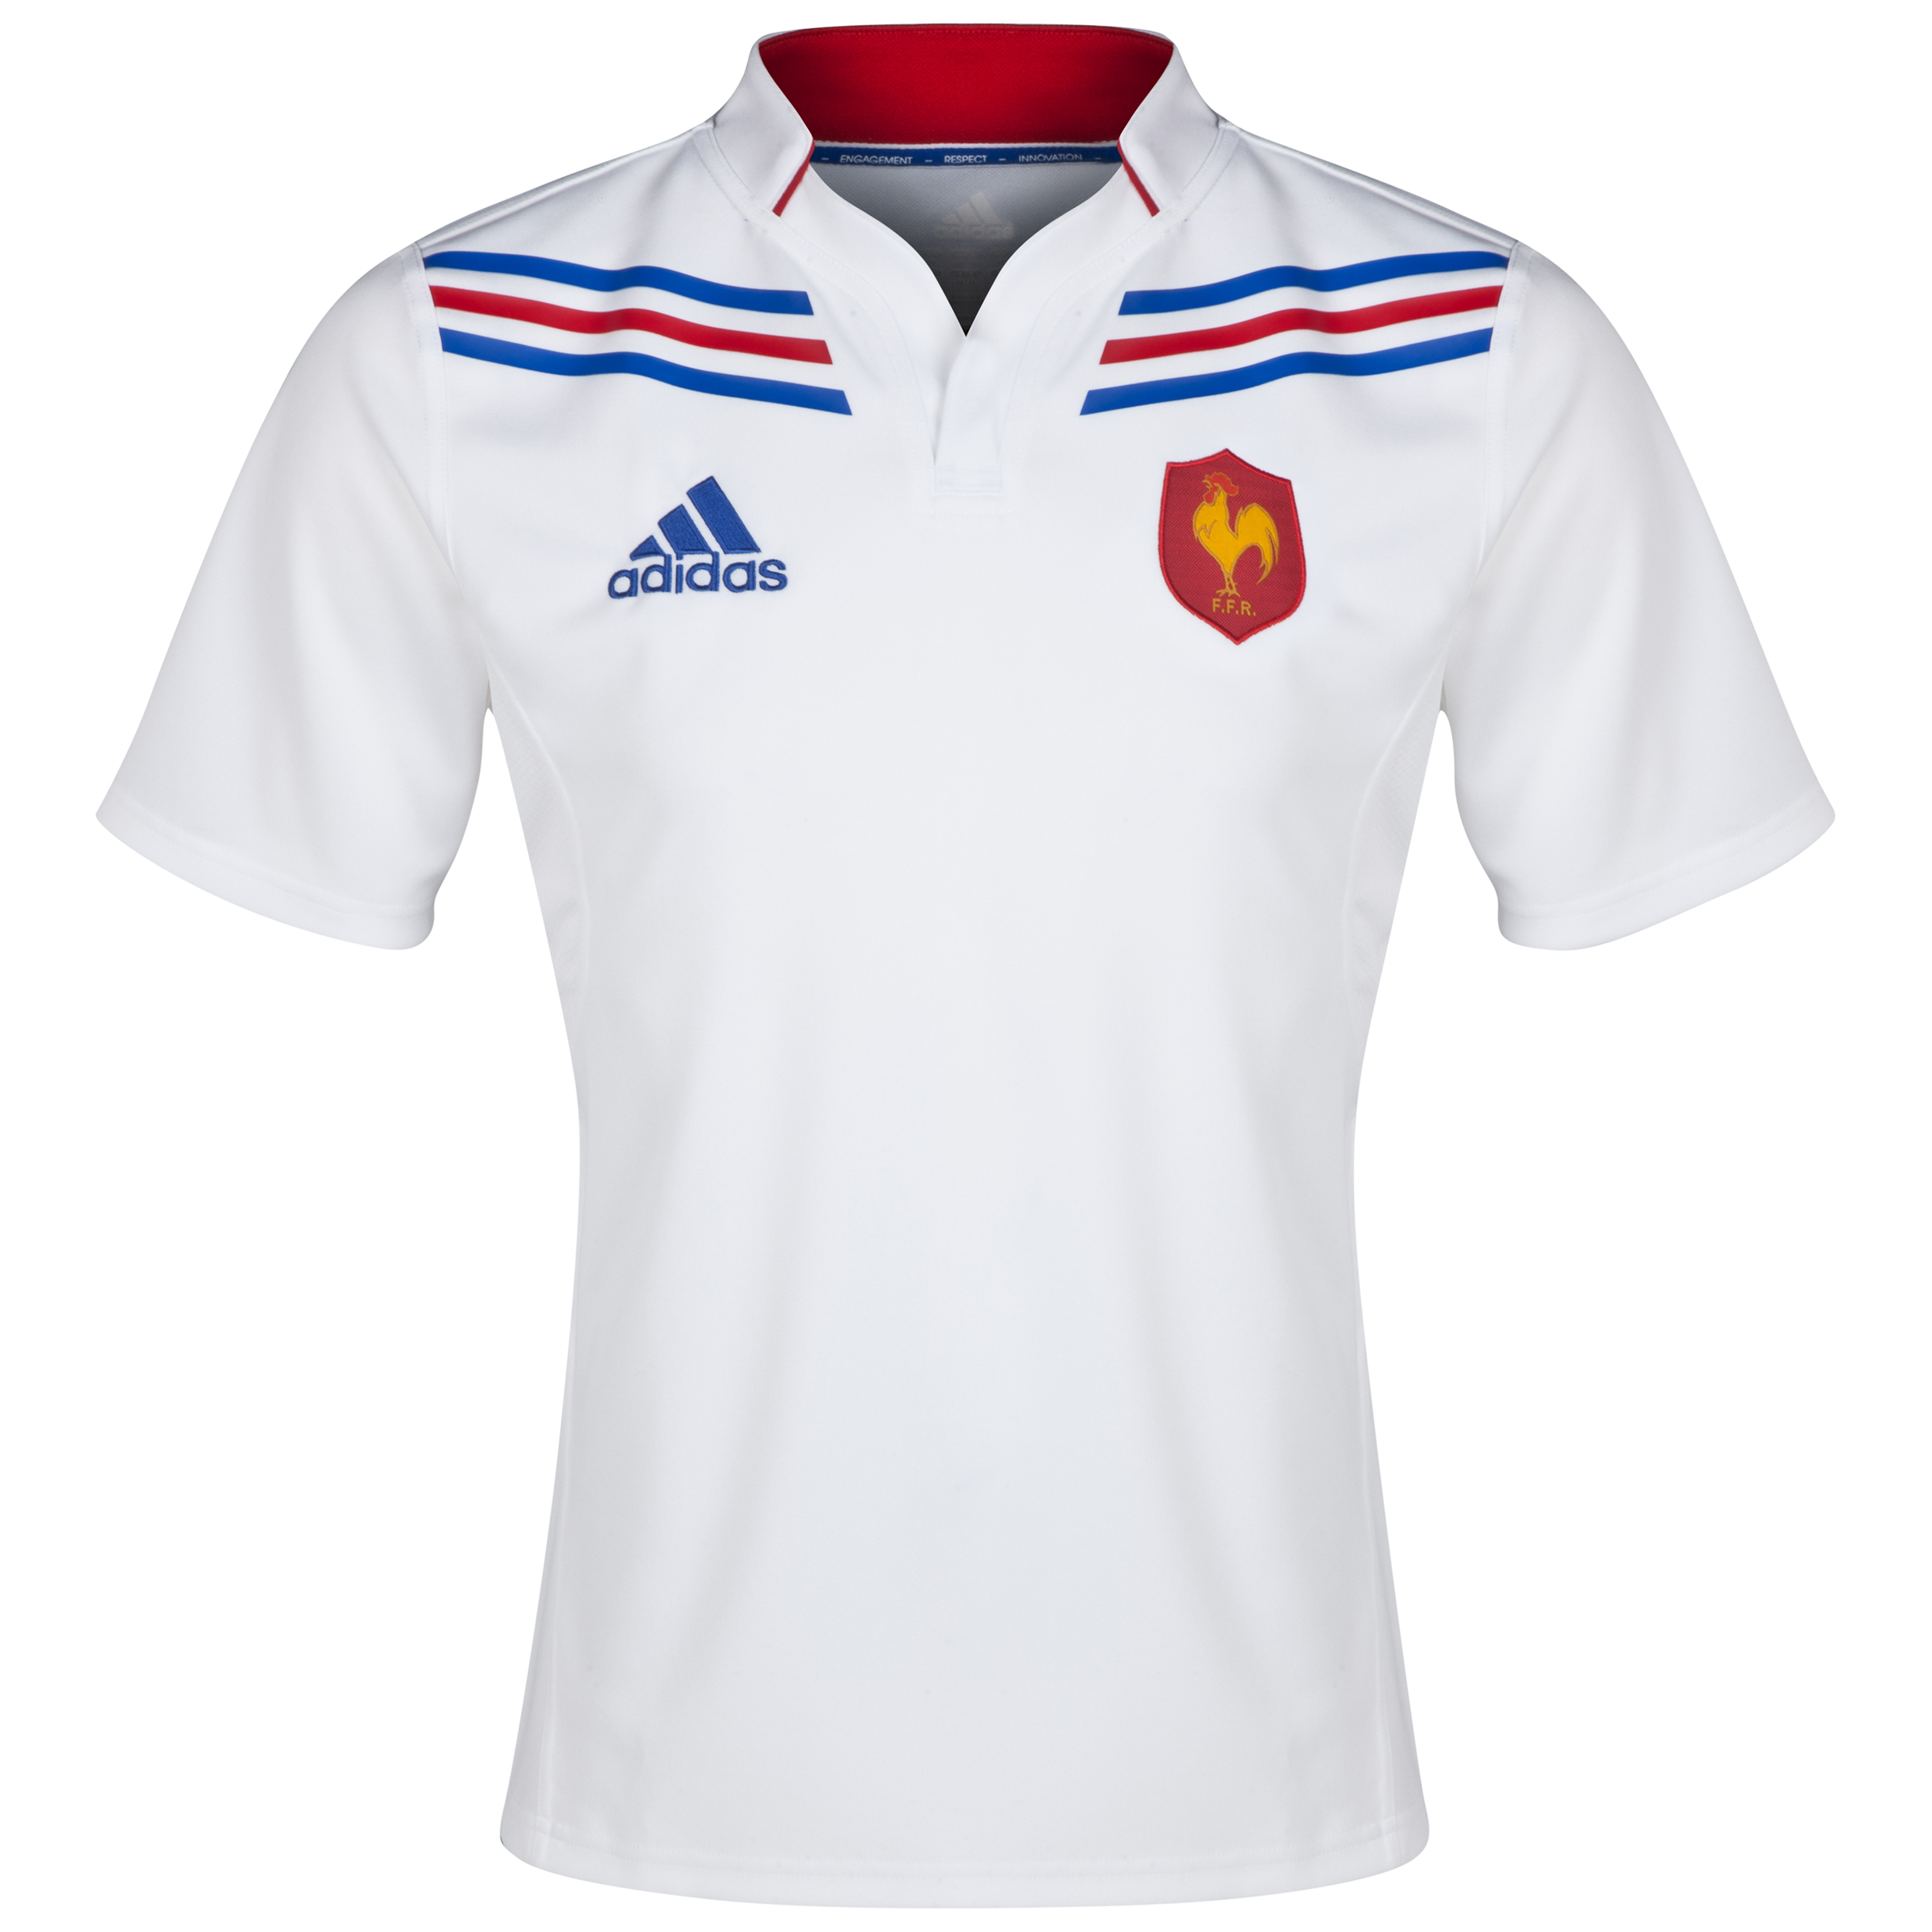 France Away Rugby Shirt 2012/14 - White/True Blue/Poppy